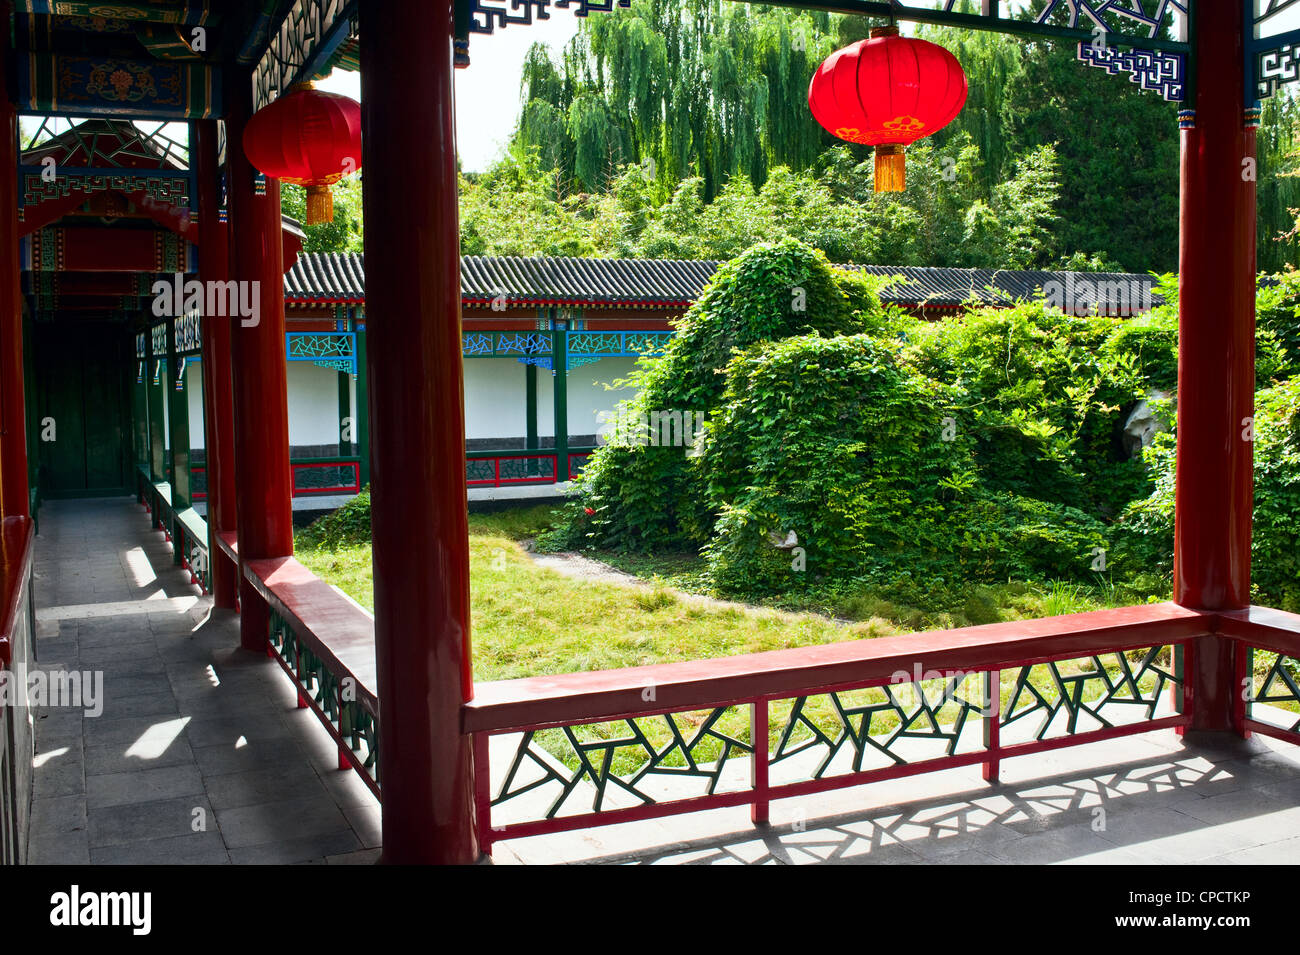 Chinese Garden - yard and red lantern - Stock Image